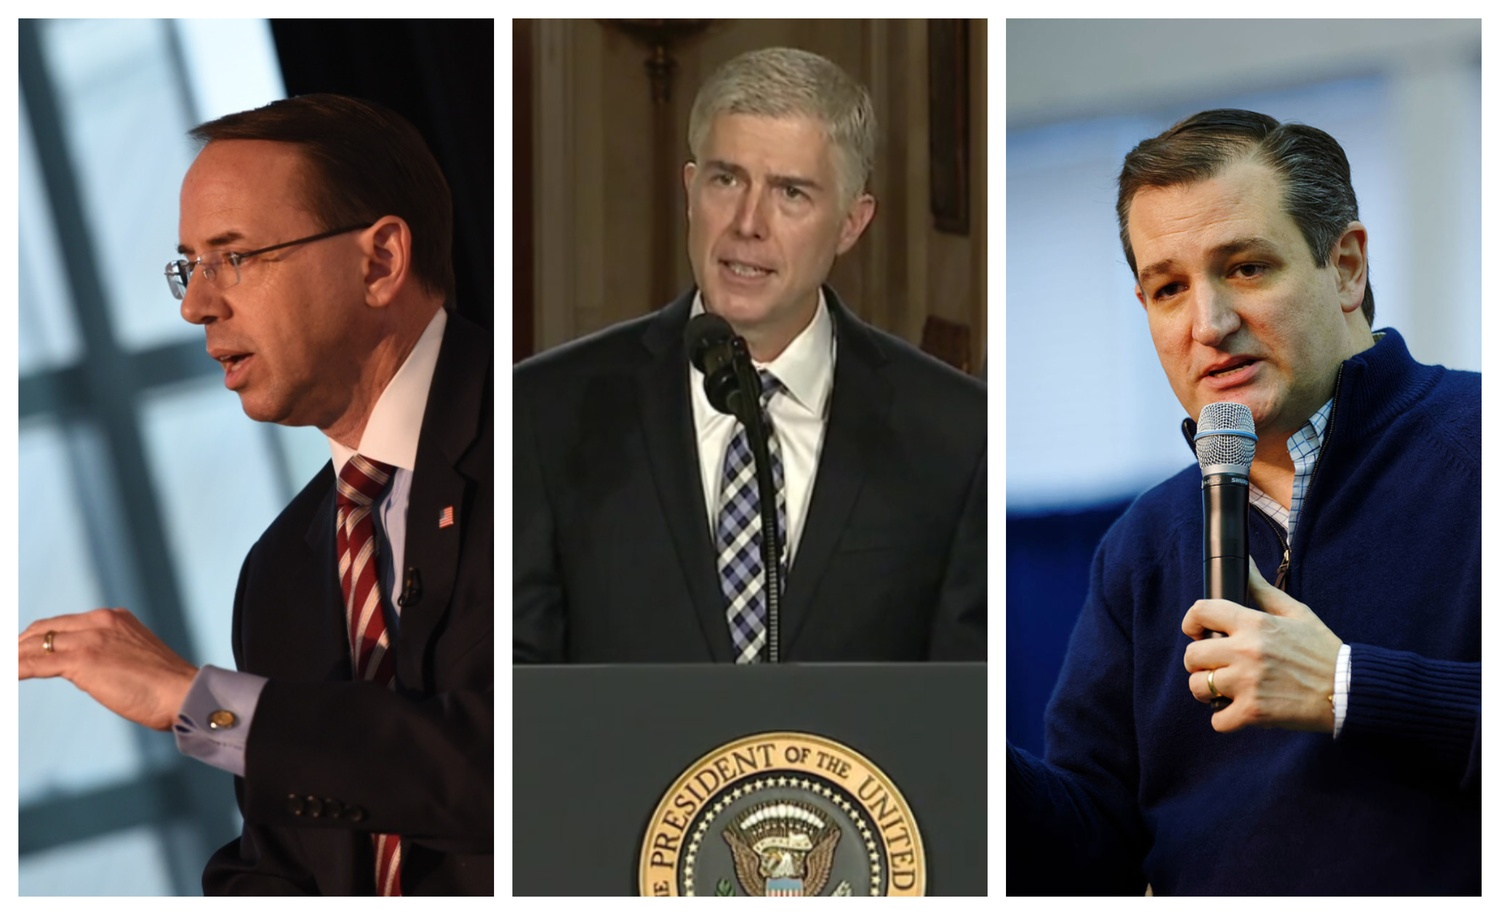 United States Deputy Attorney General Rod Rosenstein, Supreme Court Justice Neil M. Gorsuch, and United States Senator Ted Cruz all passed through the ranks of the Harvard Federalist Society.